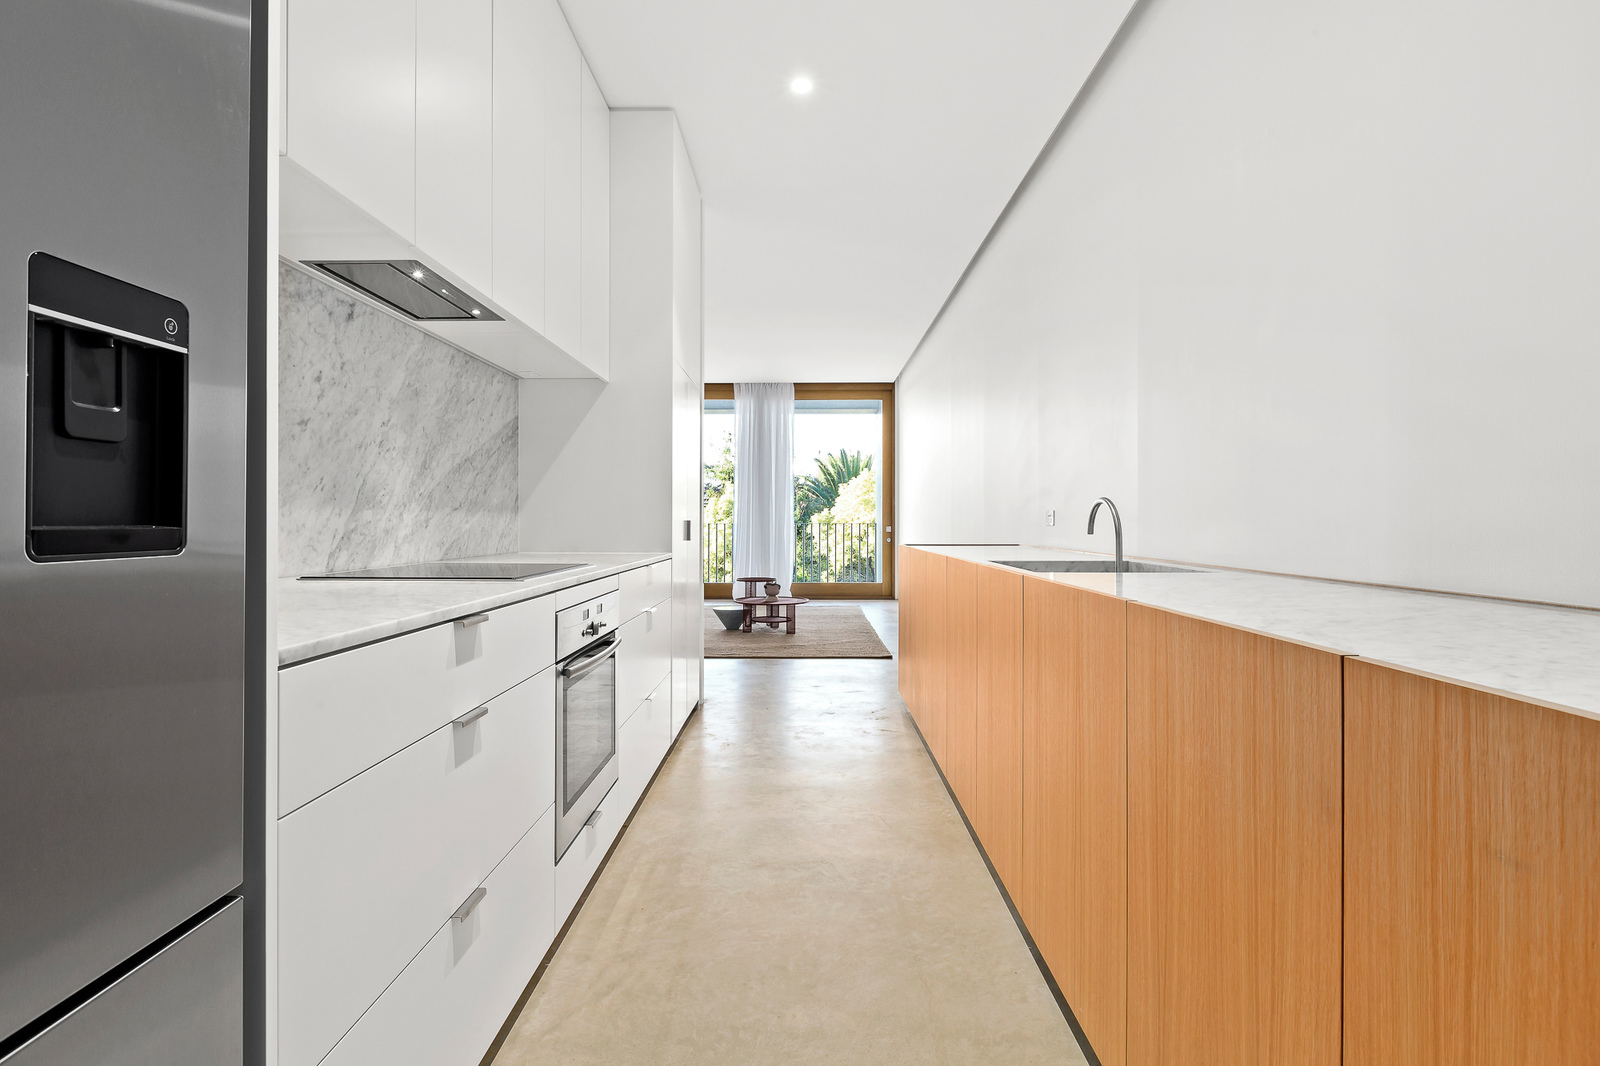 43 McKillop Street, South Yarra 3141 - Image 4